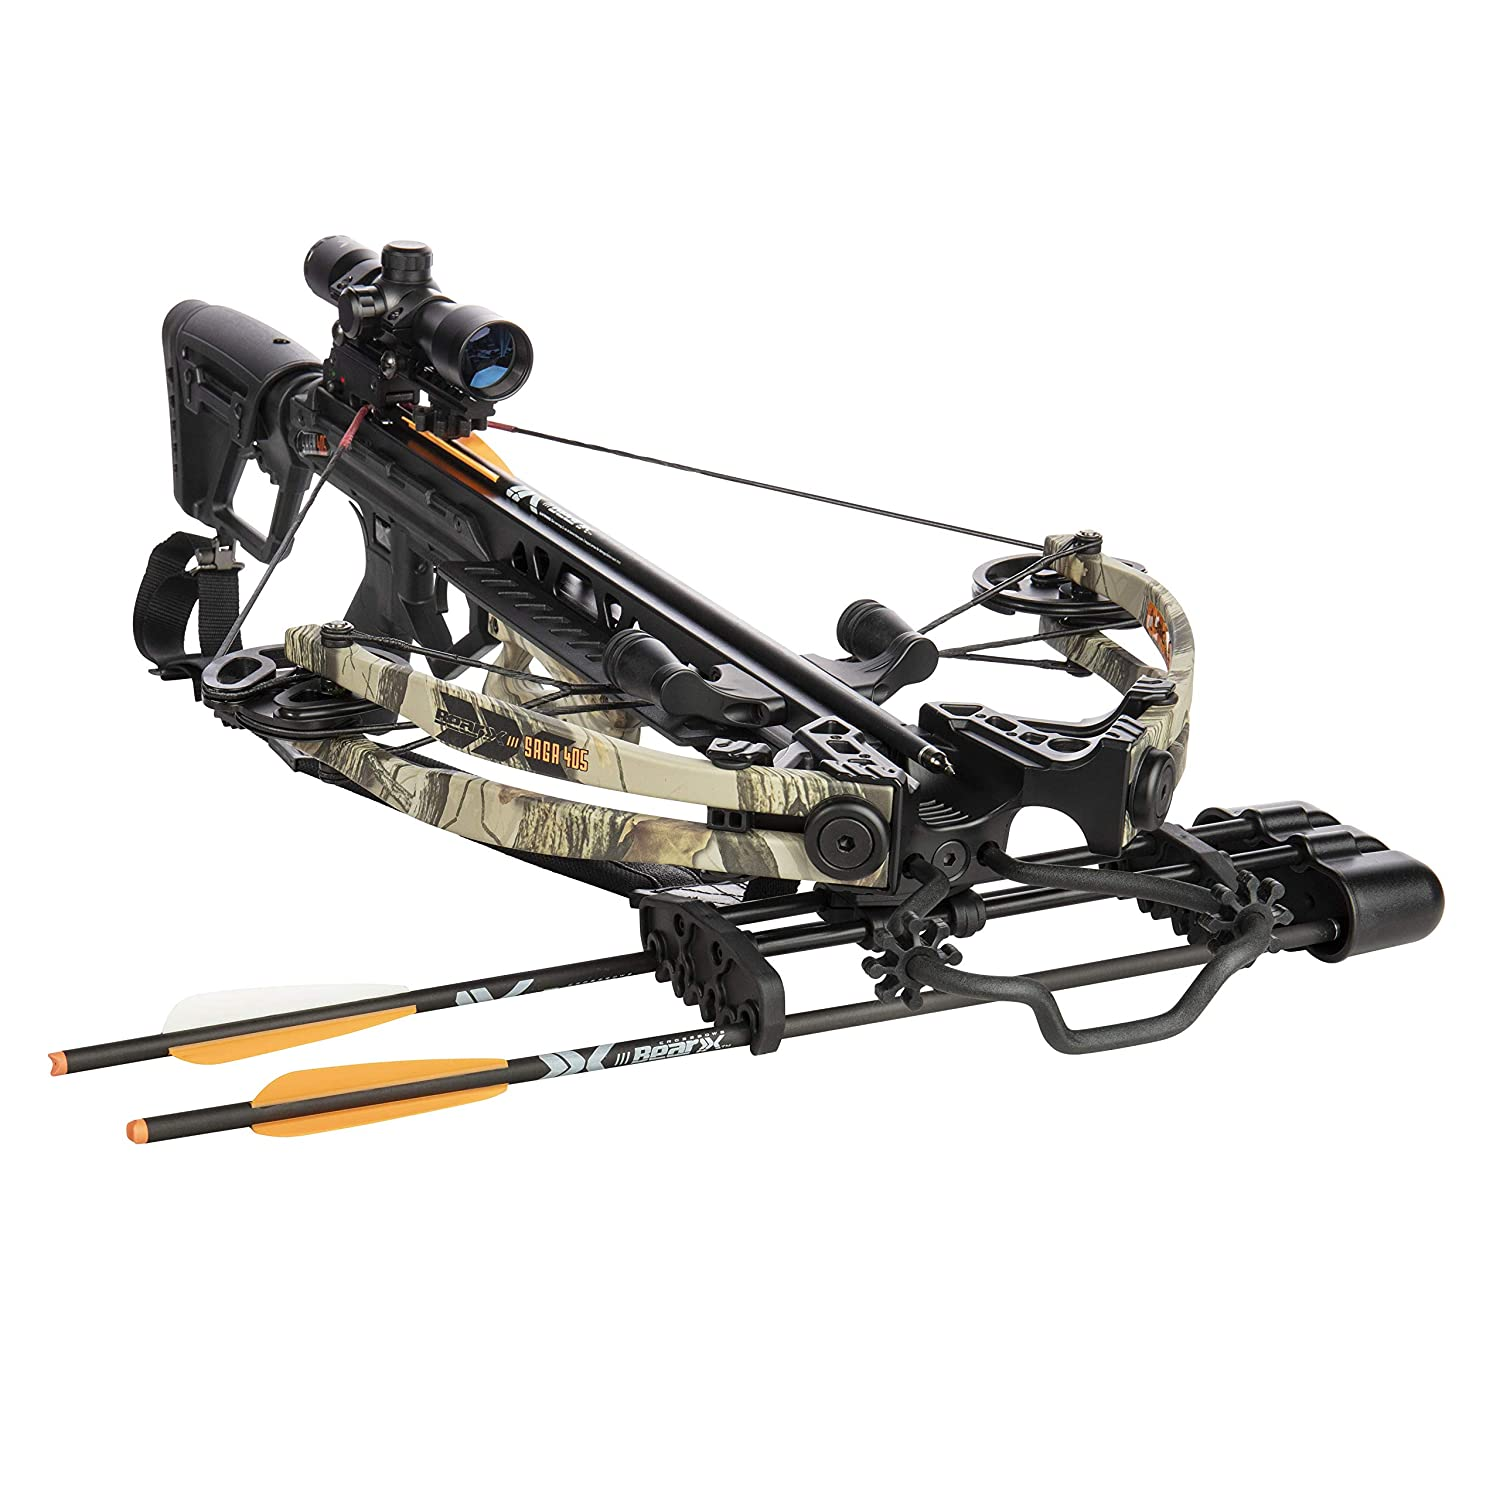 Bear Archery AC93A2A7200 Bear X Saga 405 Ready to Shoot Crossbow Package with 4×32 Scope, Quiver, Bolts, Cocking Rope, and Wax, Black Camo